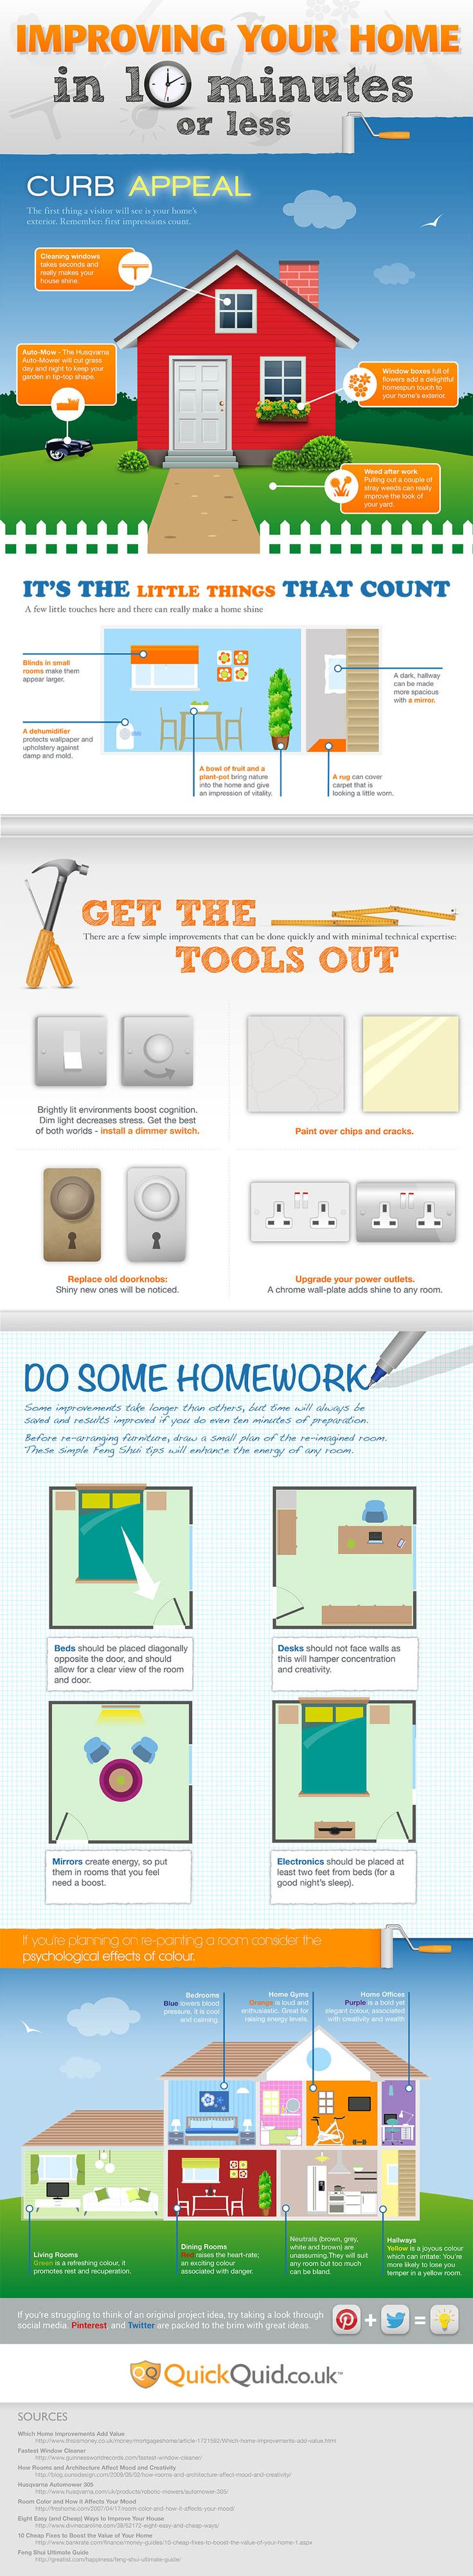 Improving Your Home in 10 Minutes or Less - Migliorare la vostra casa in 10 minuti (o meno)